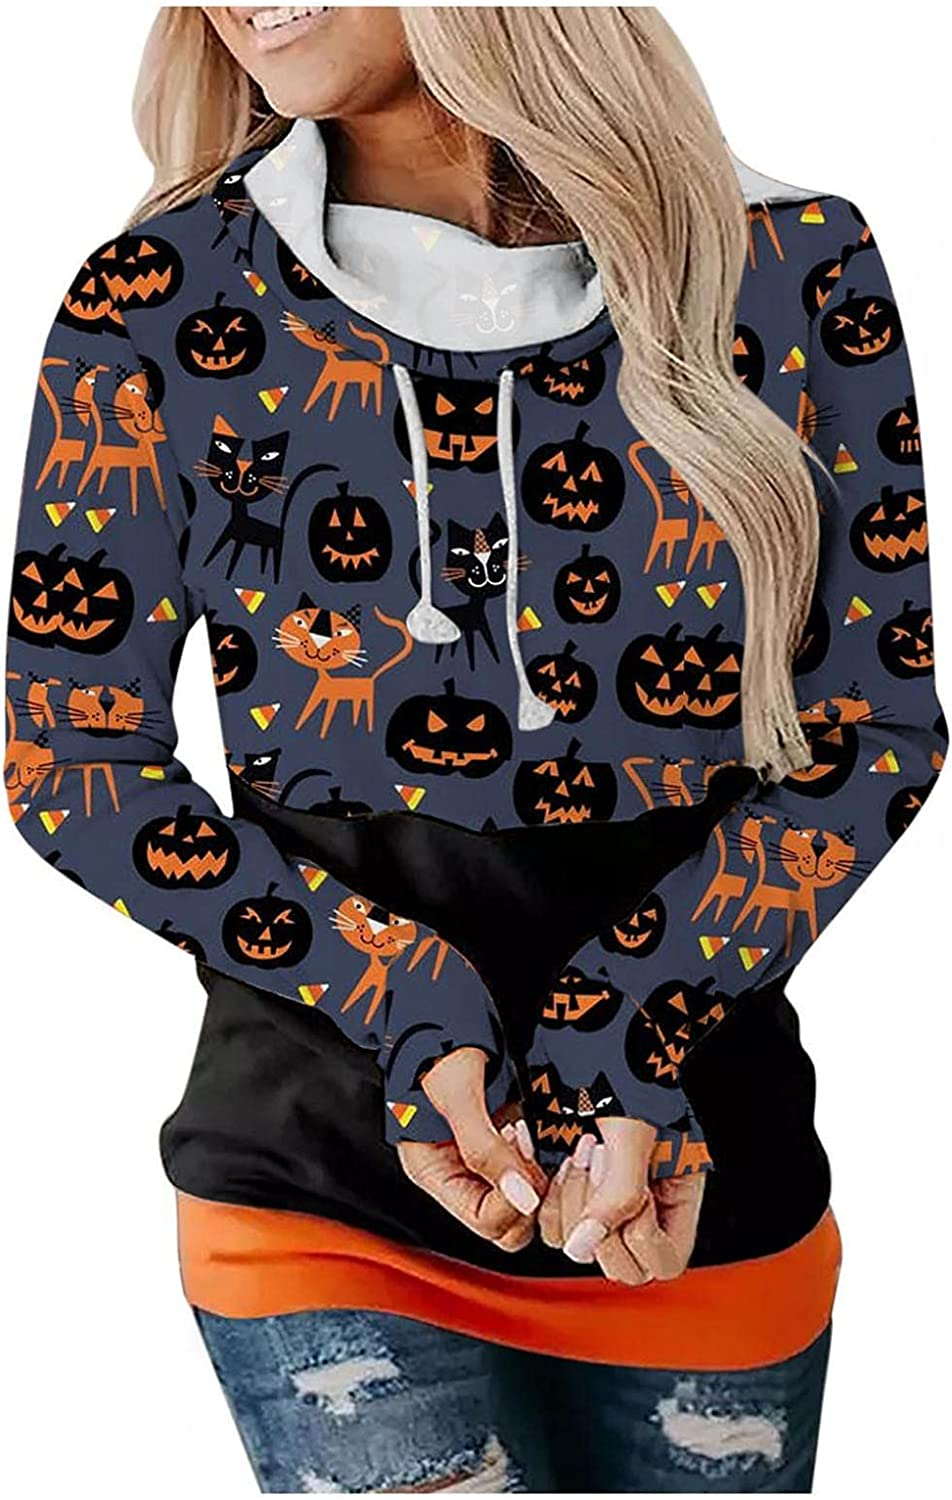 Gerichy Hoodies for Women,Women's Halloween Graphic Hoodies Pullover Fall Casual Hooded Sweatshirts Tunics Sweaters Tops